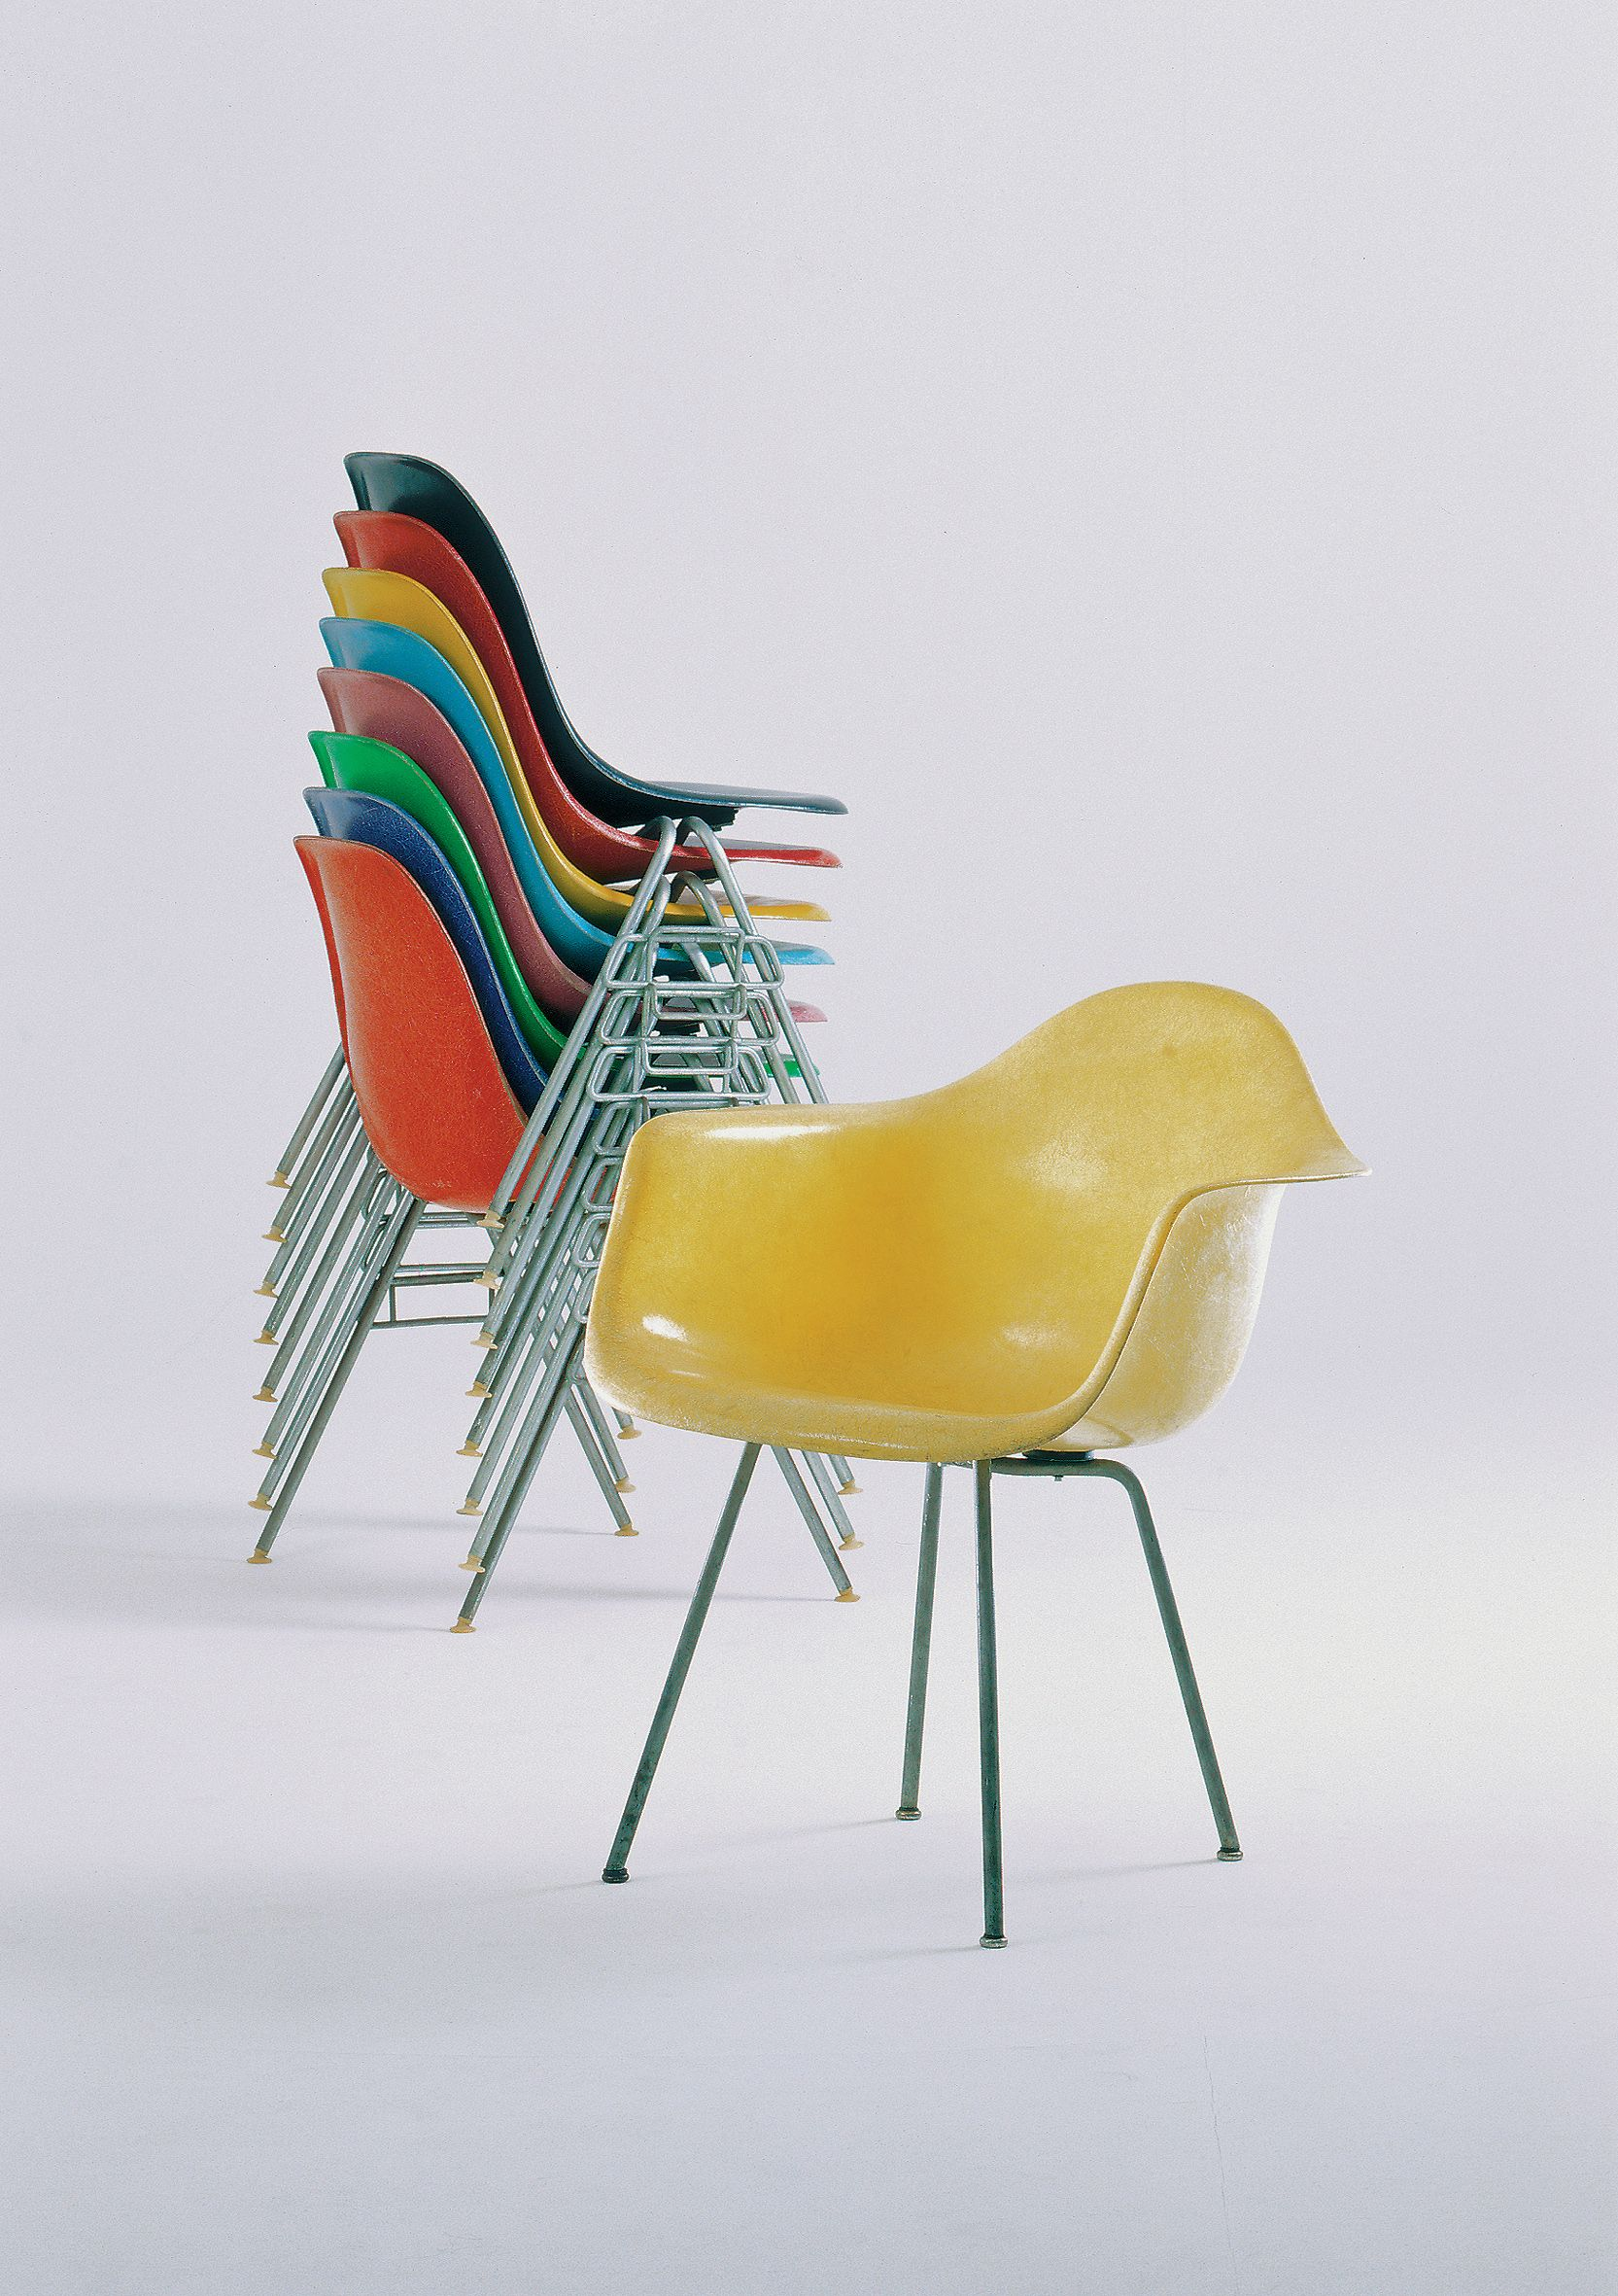 Vitra Design Museum Chairs : vitra-design-museum-exhibition-eames-chair